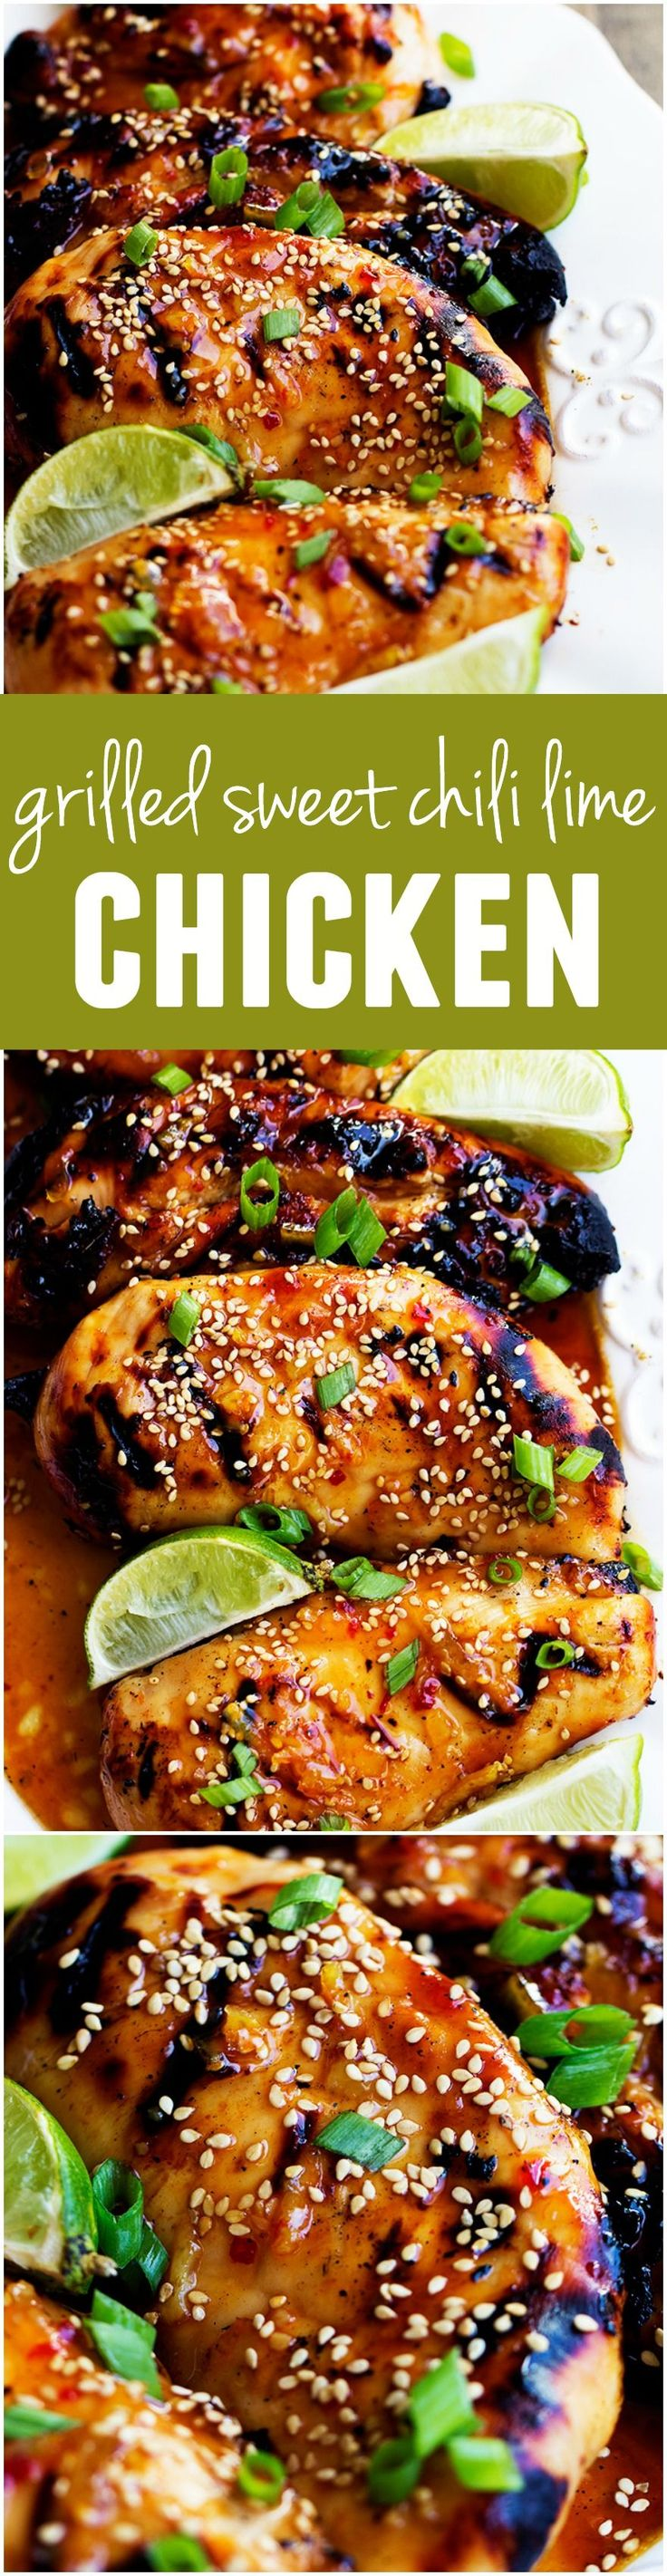 jordan 11 72 10 shoe This Sweet Chili Lime Chicken is grilled to tender and juicy perfection and the flavor is out of this world